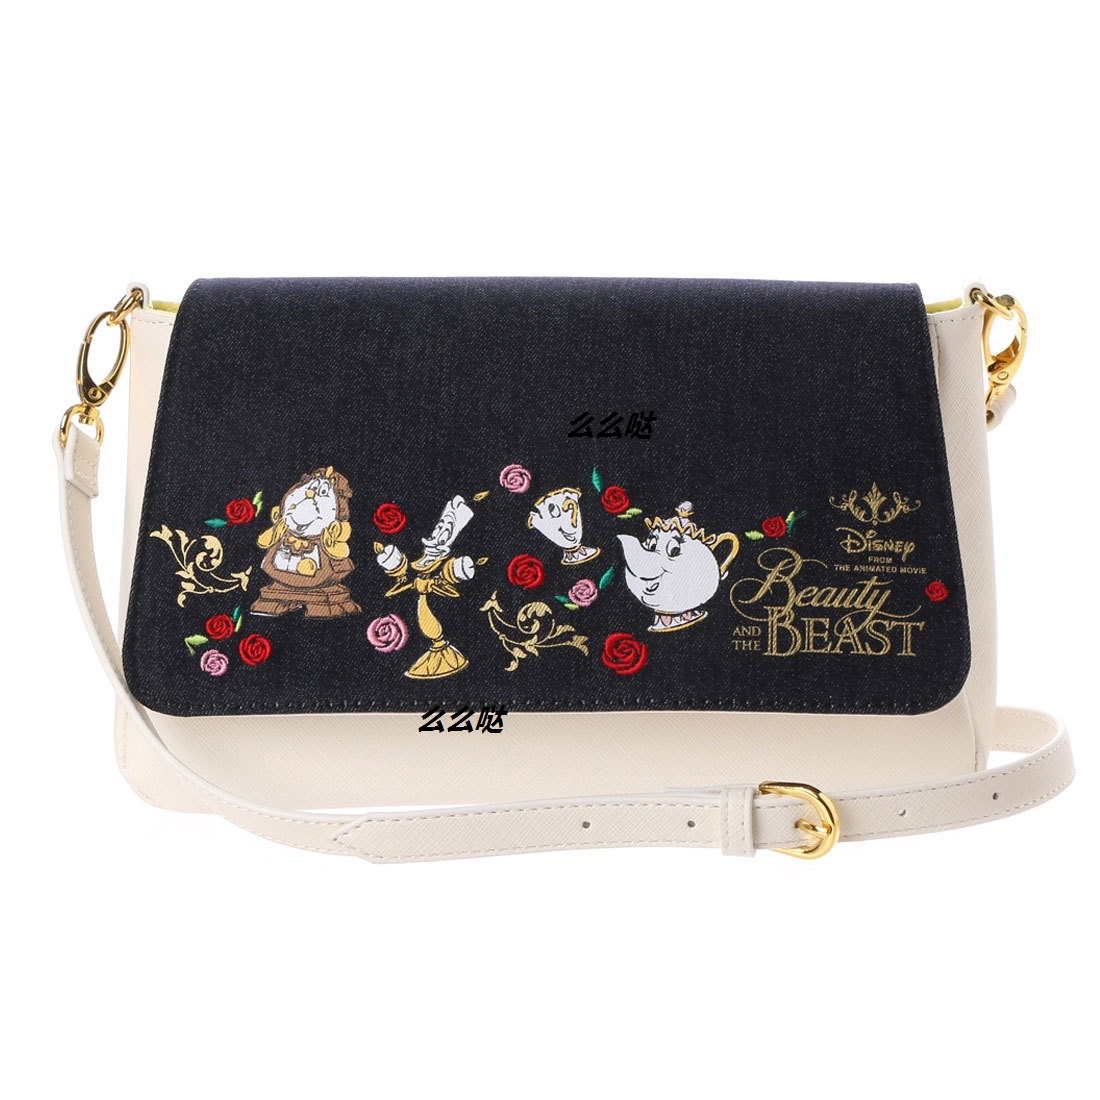 New Fashion Genuine Beauty And Beast Wallet Belle Princess Handbag Girls Cartoon Shoulder Bag For Girls Gifts in Top Handle Bags from Luggage Bags